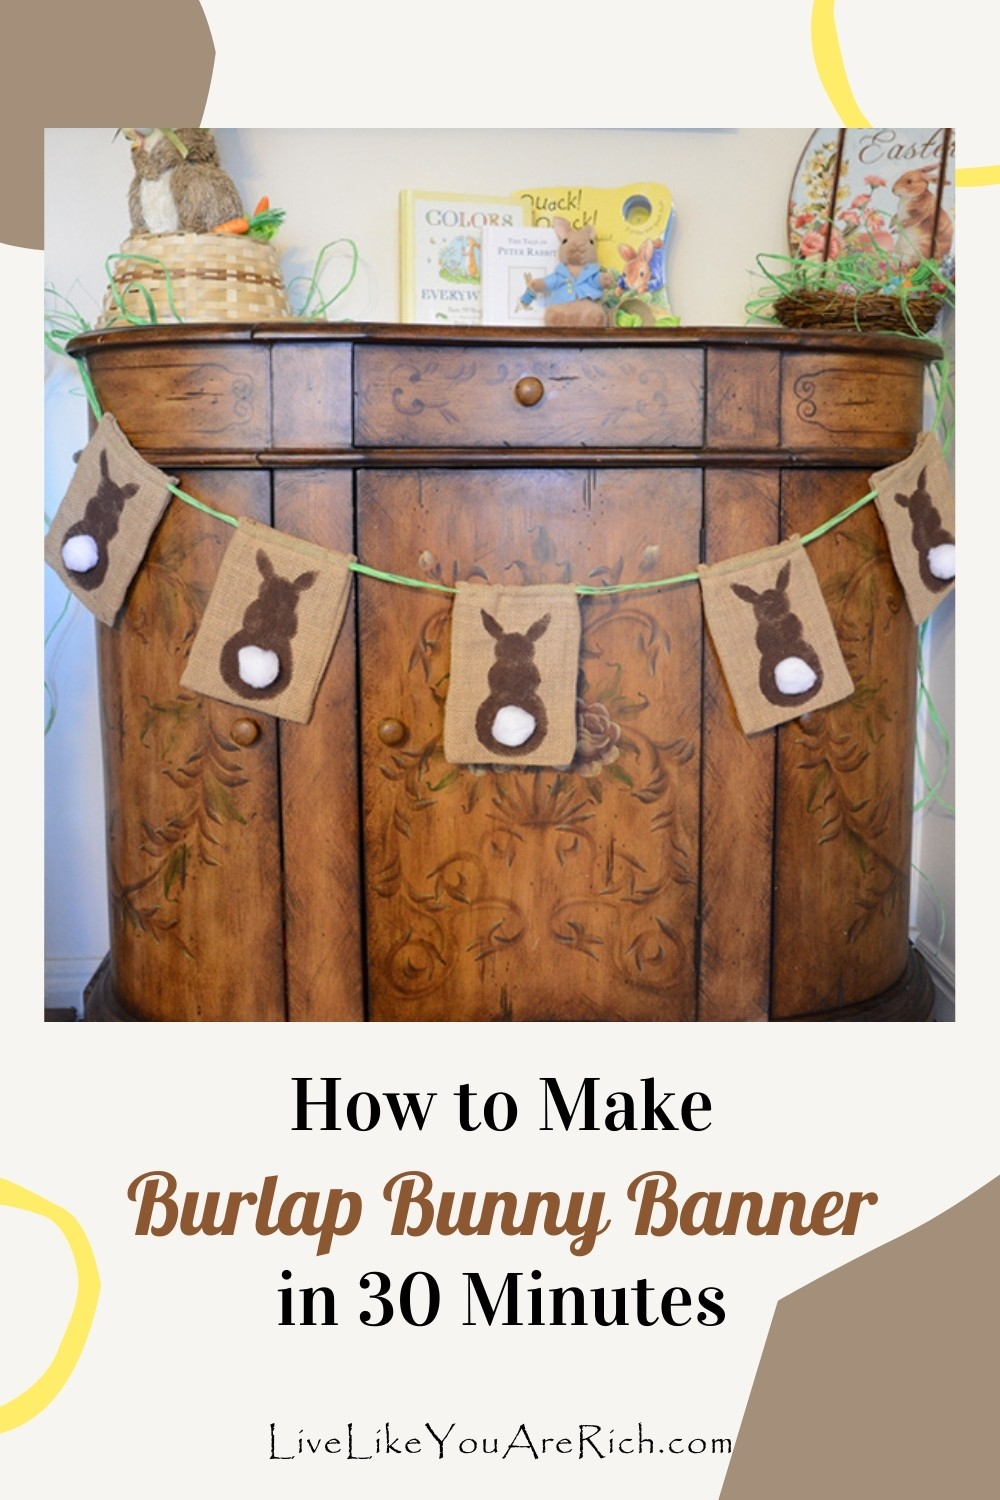 How to Make Burlap Bunny Banner in 30 Minutes